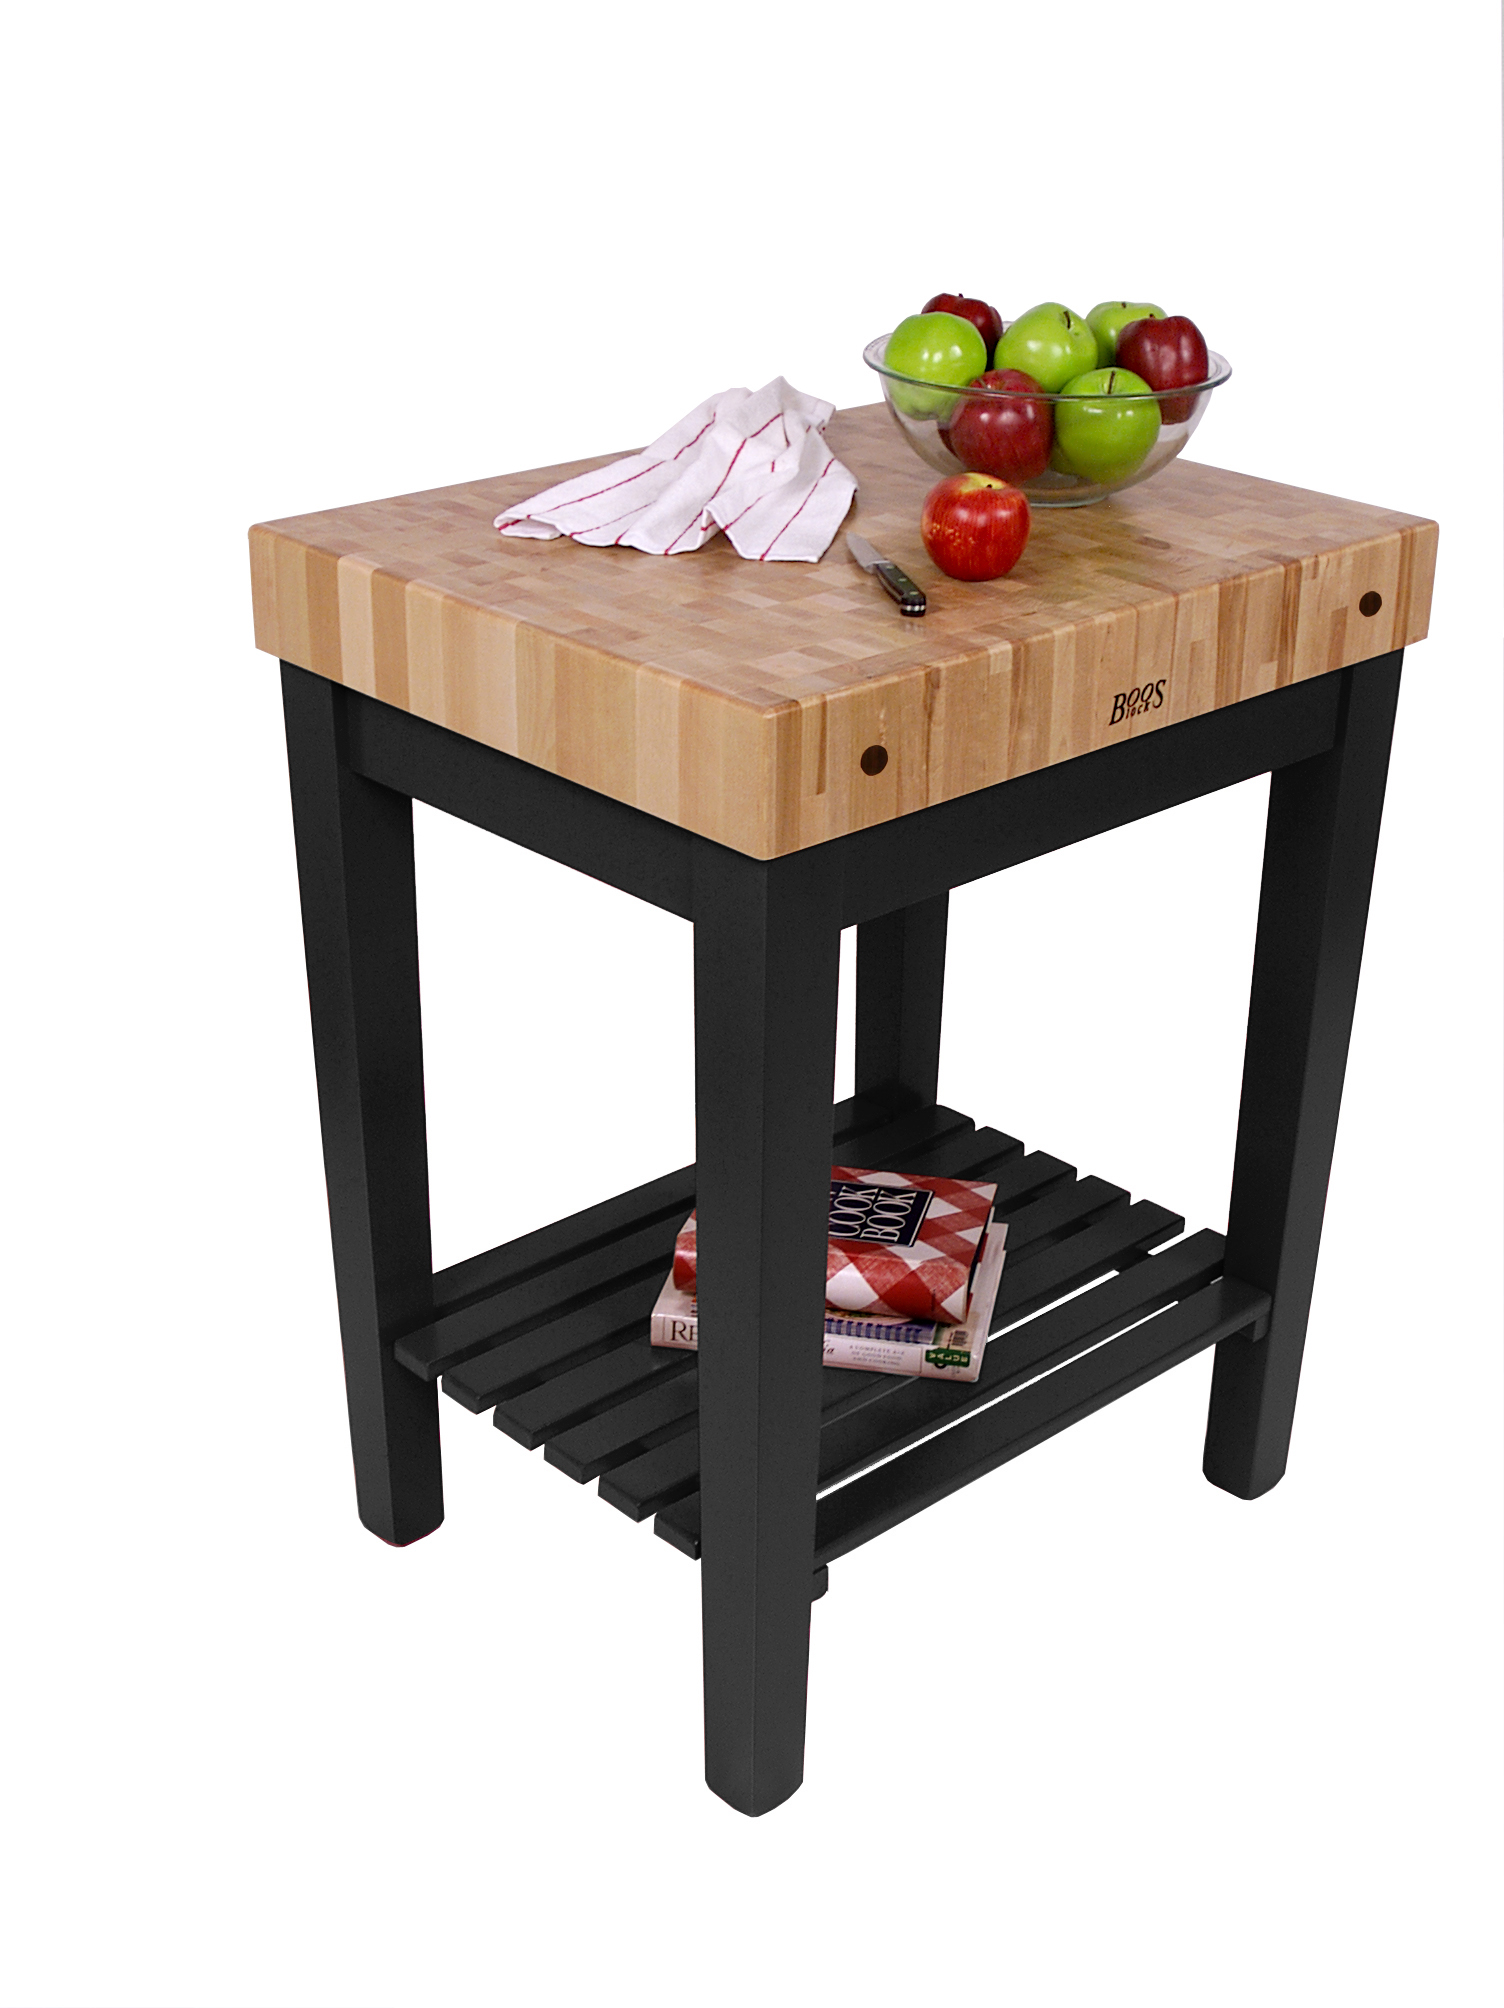 Kitchen Island 30 X 24 john boos chef's block with shelf | butcher block